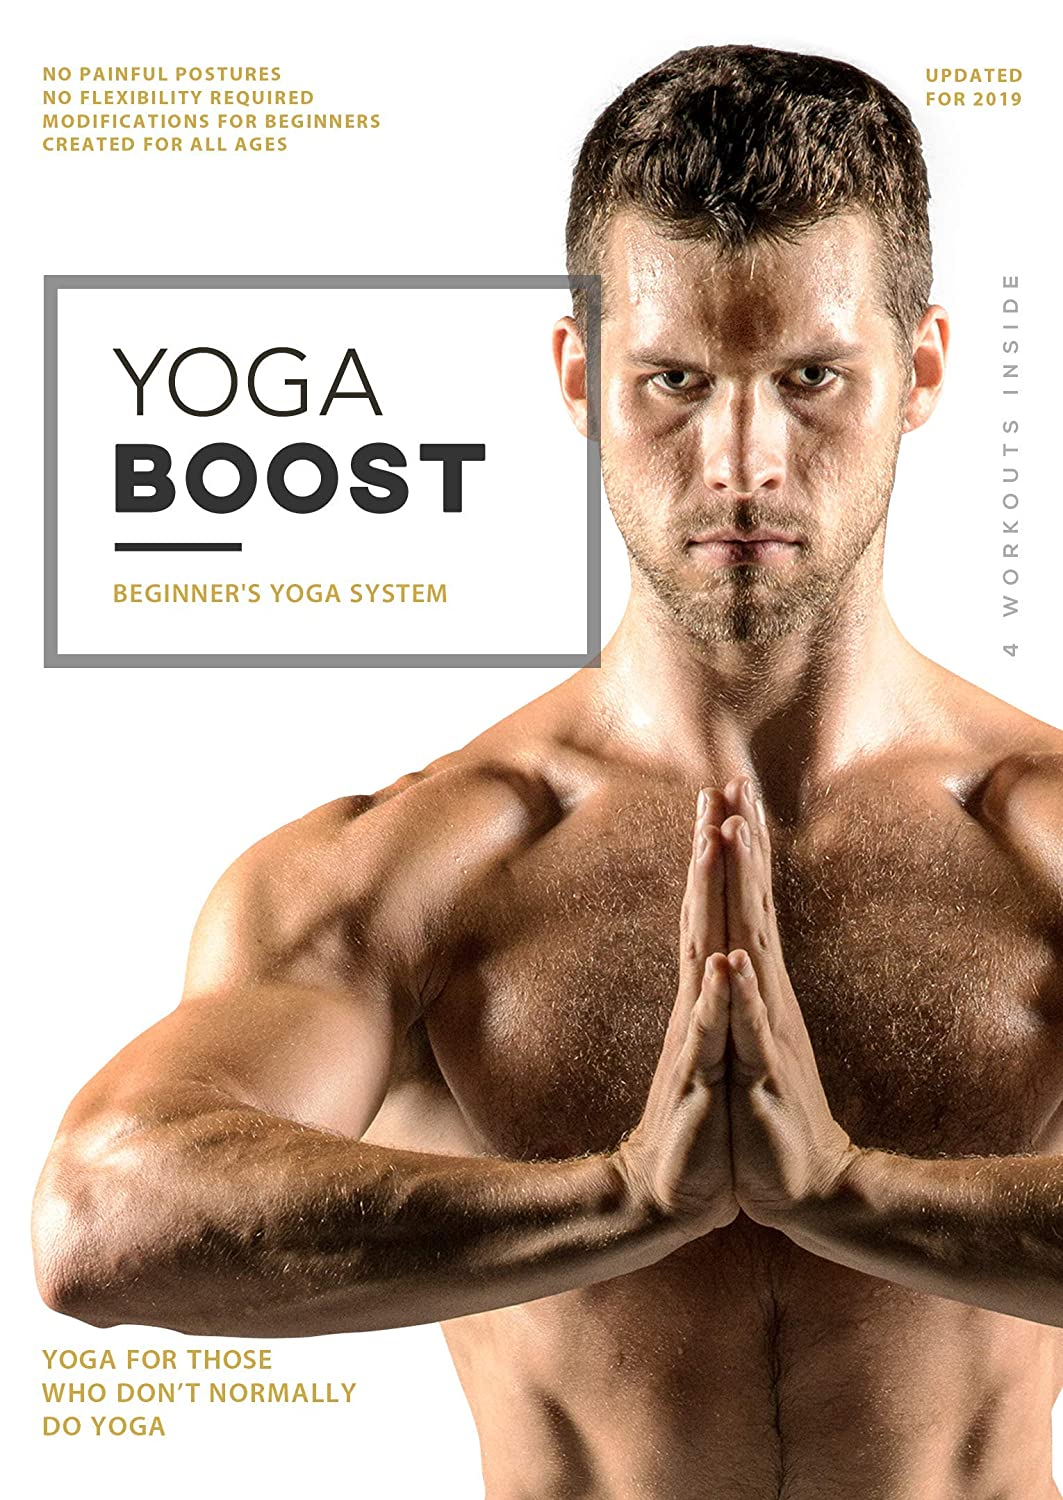 Amazon Com Yoga Boost Beginner S Yoga System For Men And Women Who Don T Normally Do Yoga With Modifications For The Inflexible Build Muscle Lose Weight Soothe Sore Muscles And Relieve Stress Movies